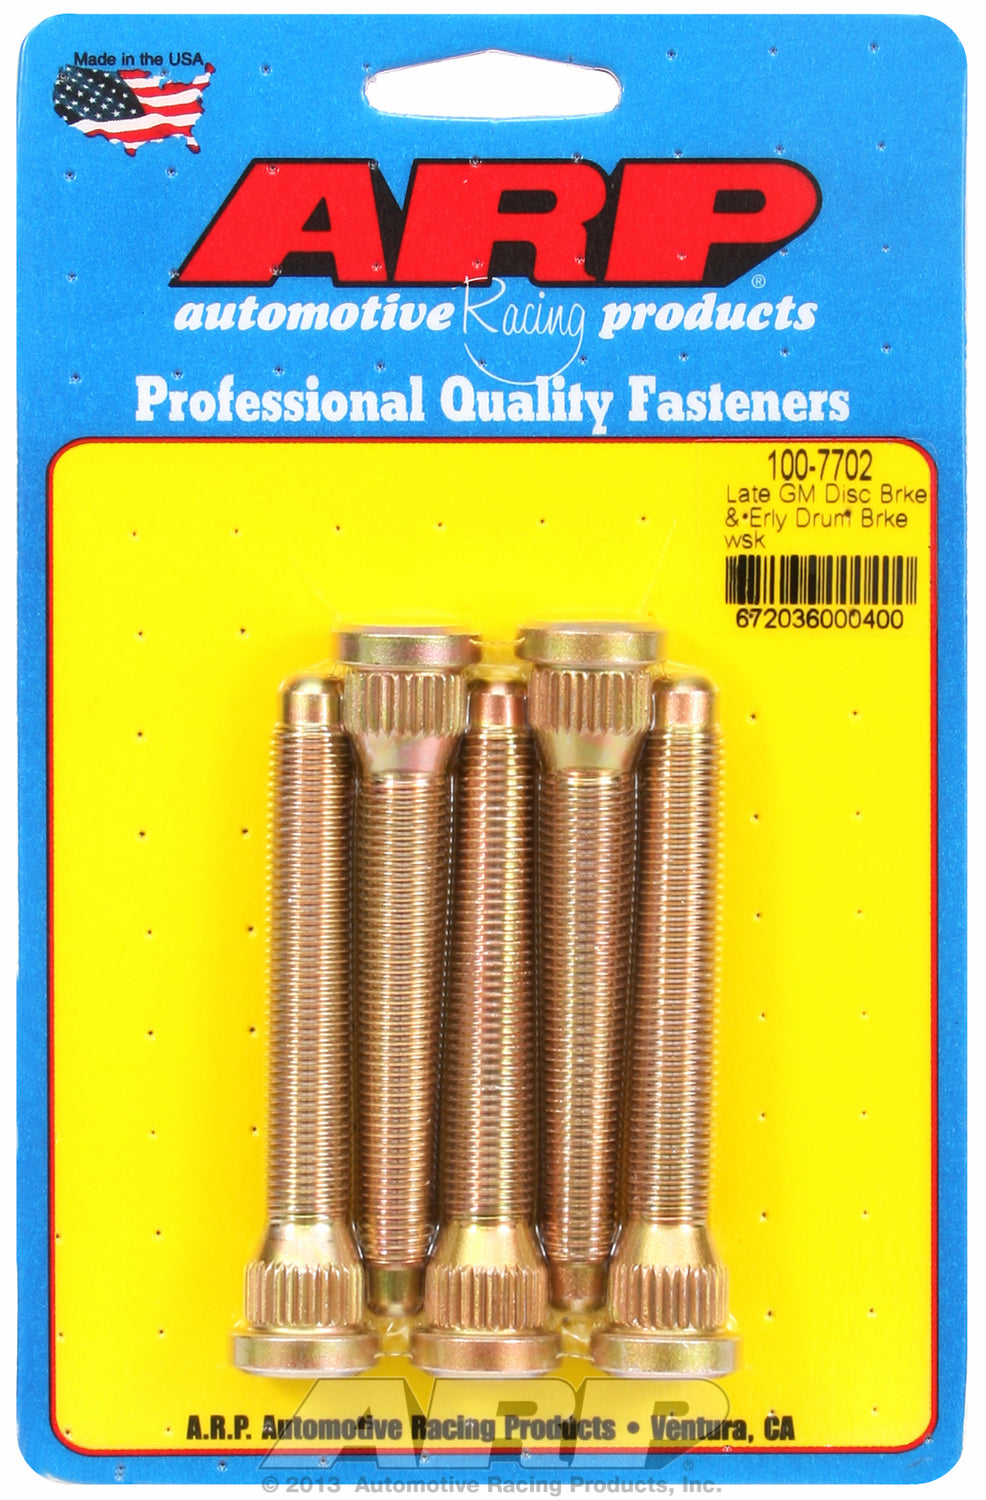 Wheel Stud Kit for Late GM Disk Brakes and Early Drum Brake